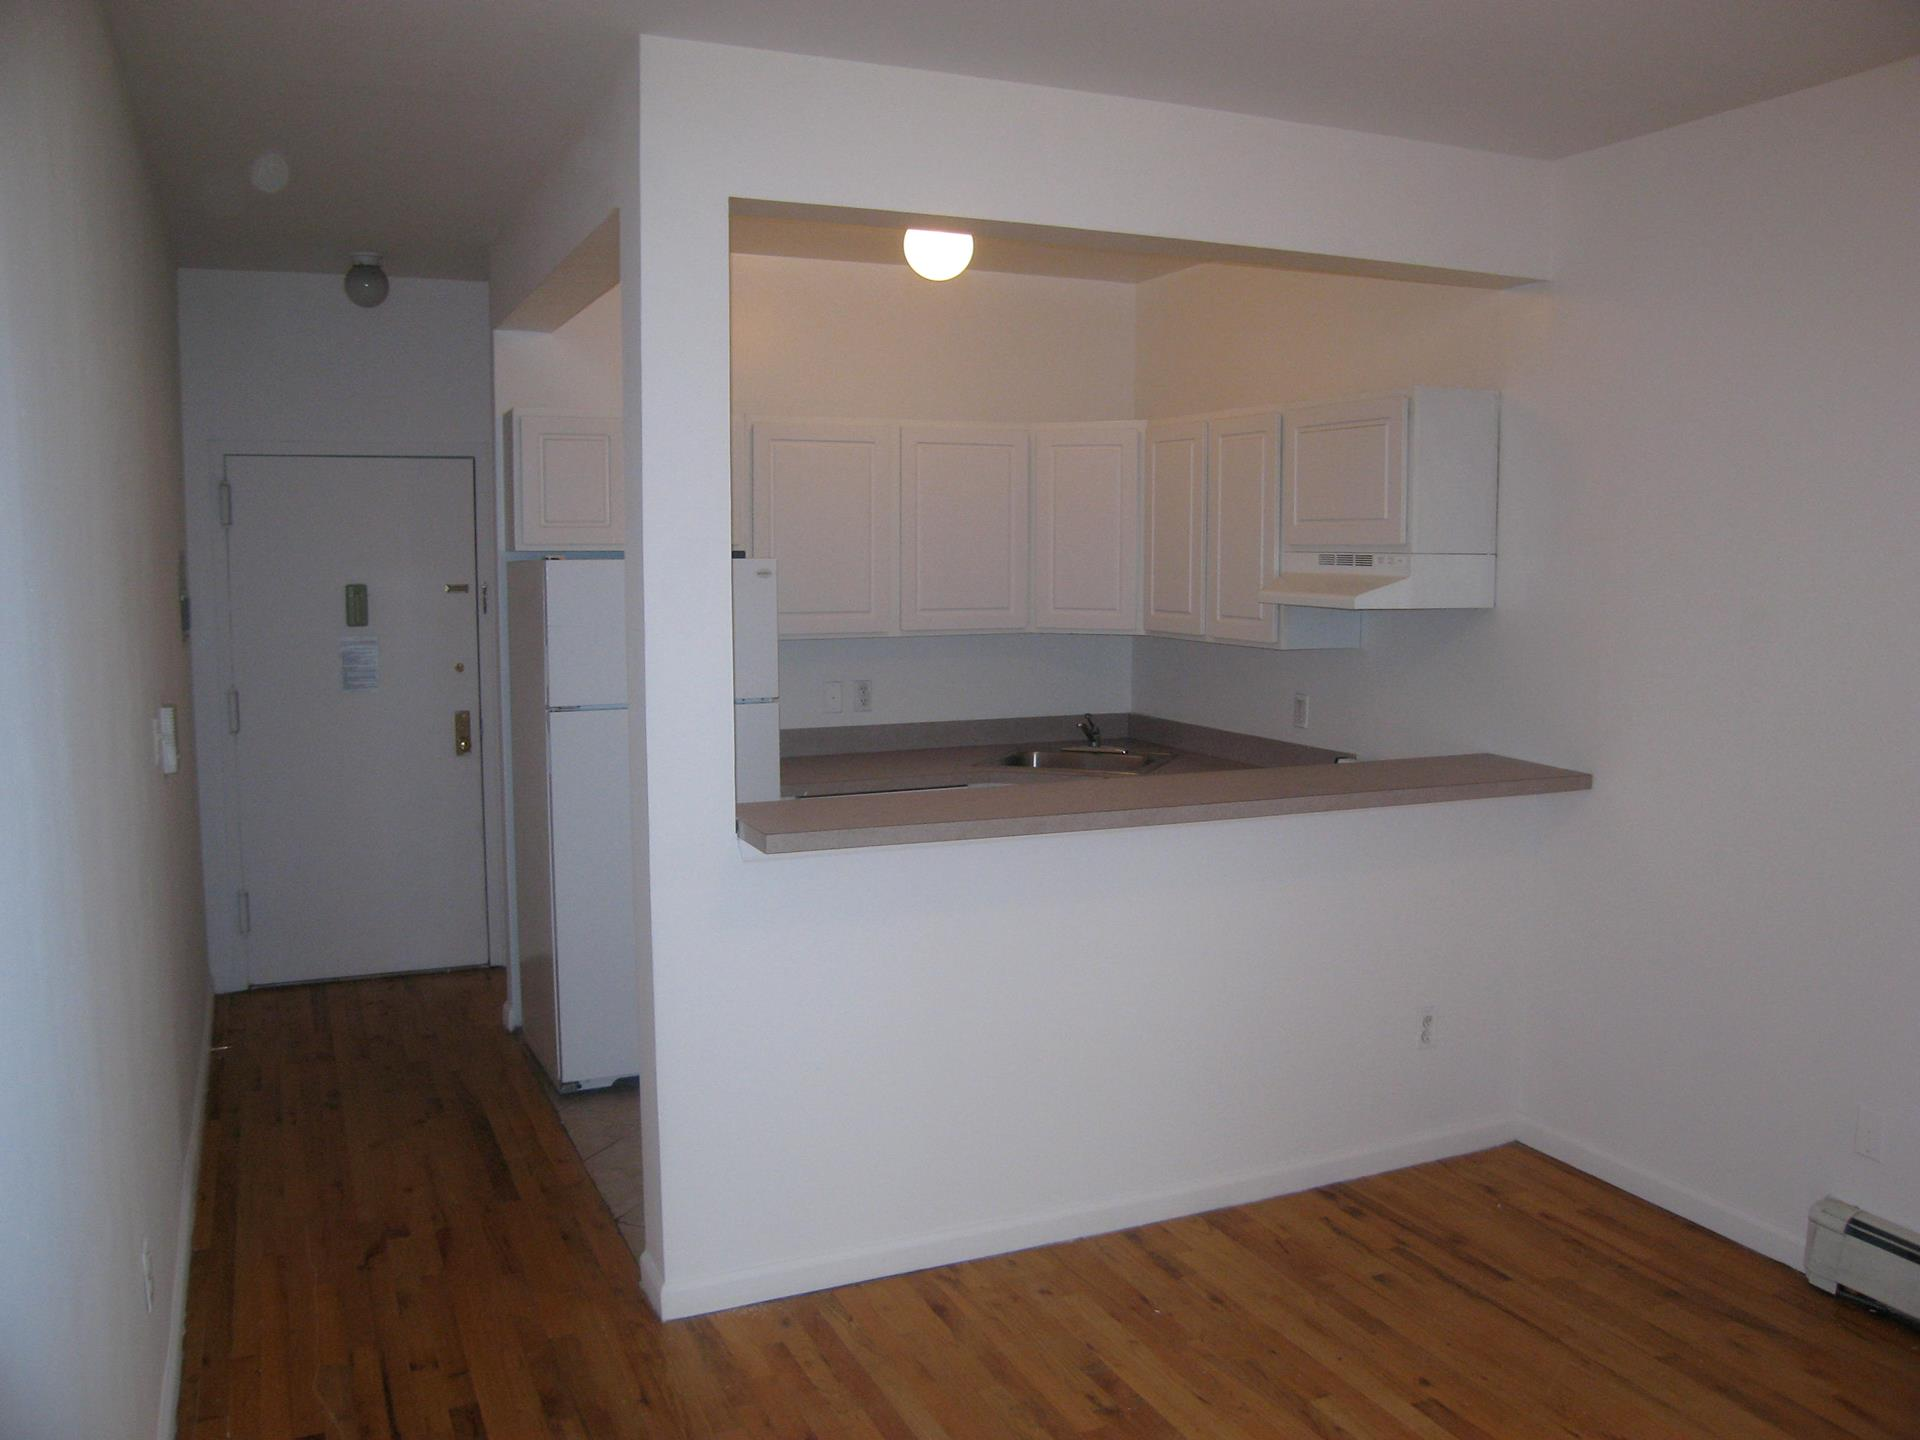 509 East 12th St, 2C - East Village, New York